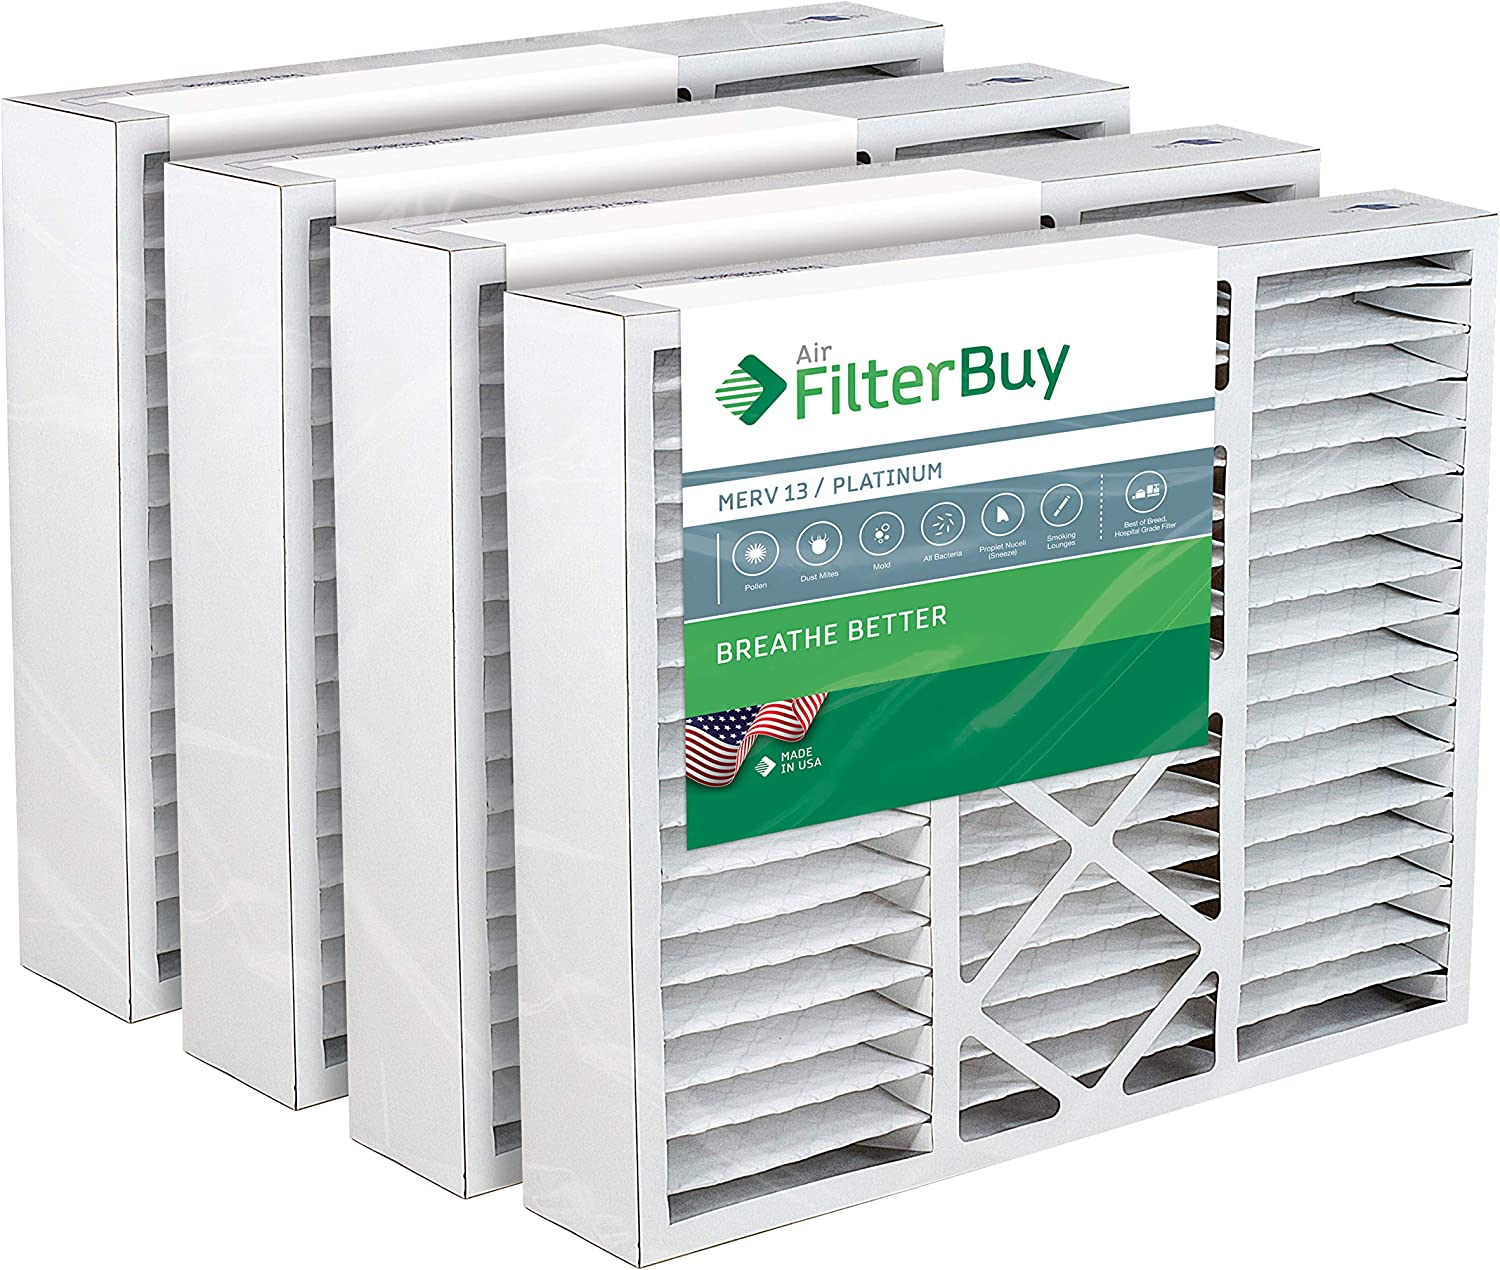 FilterBuy 20x20x5 Amana Goodman Coleman York FS2020 M2-1056 MU2020 9183960 Compatible Pleated AC Furnace Air Filters (MERV 13, AFB Platinum). 4 Pack.